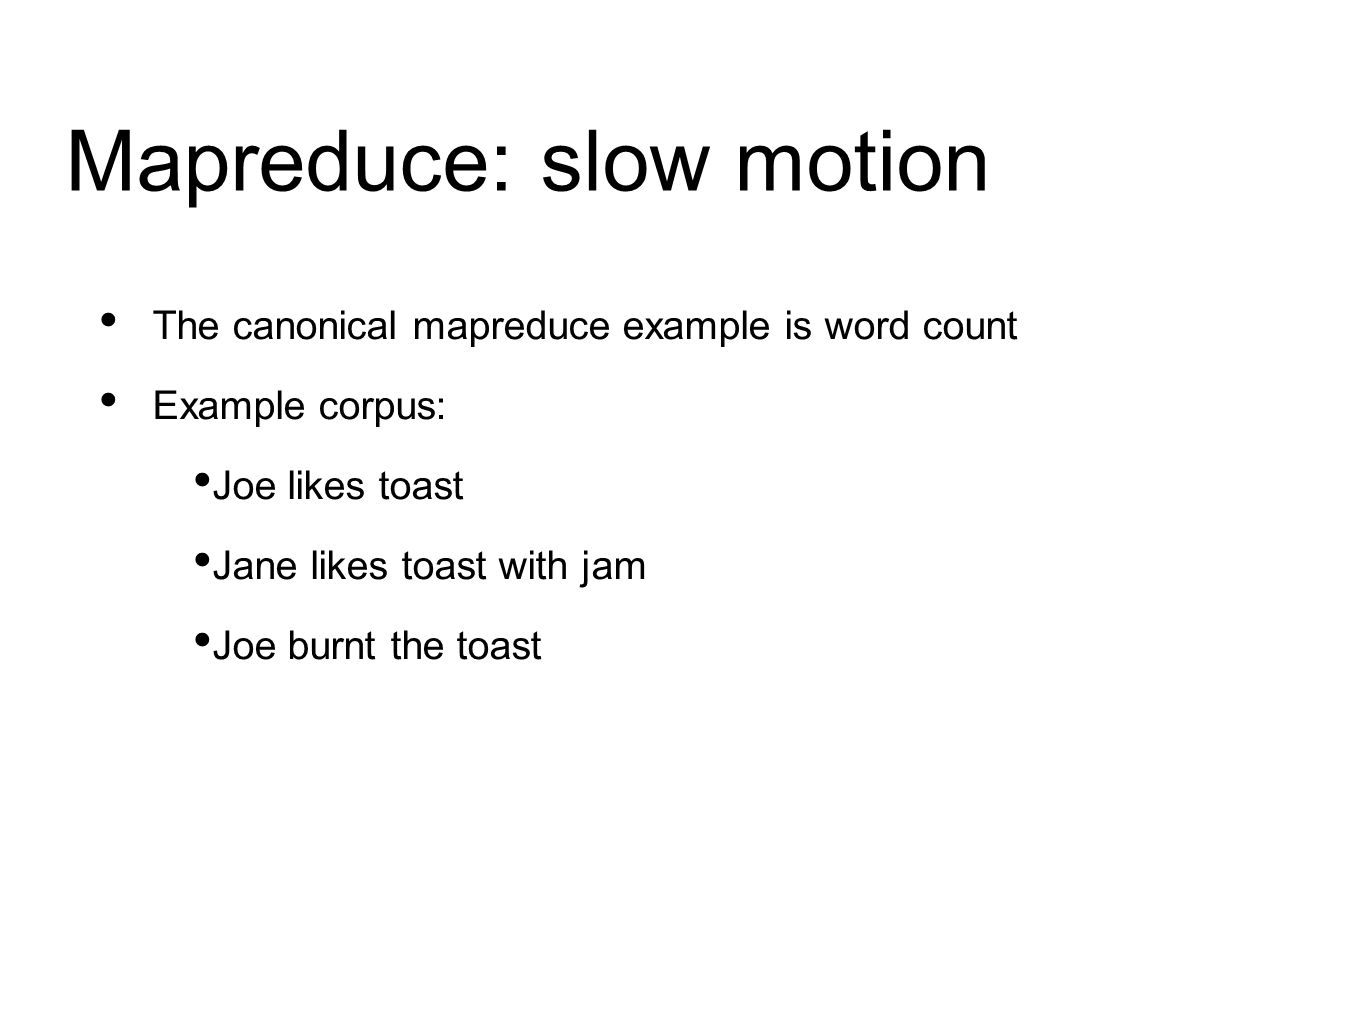 Mapreduce: slow motion The canonical mapreduce example is word count Example corpus: Joe likes toast Jane likes toast with jam Joe burnt the toast